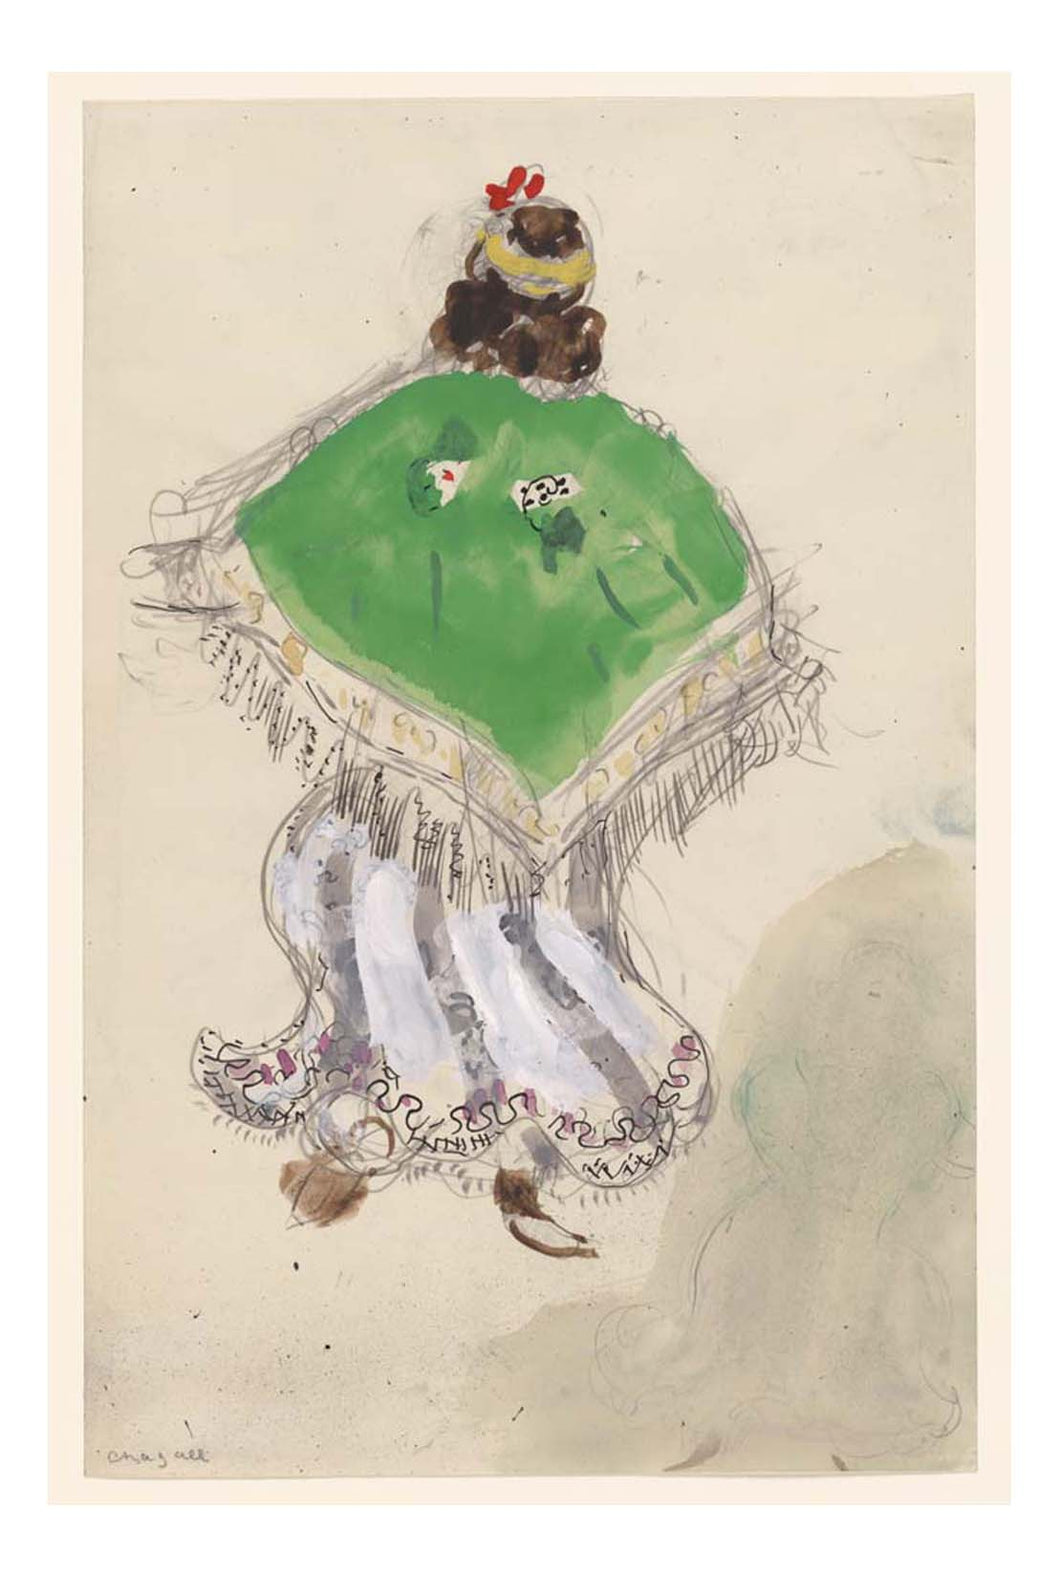 Marc Chagall - A Gypsy, costume design for Aleko, 16x12